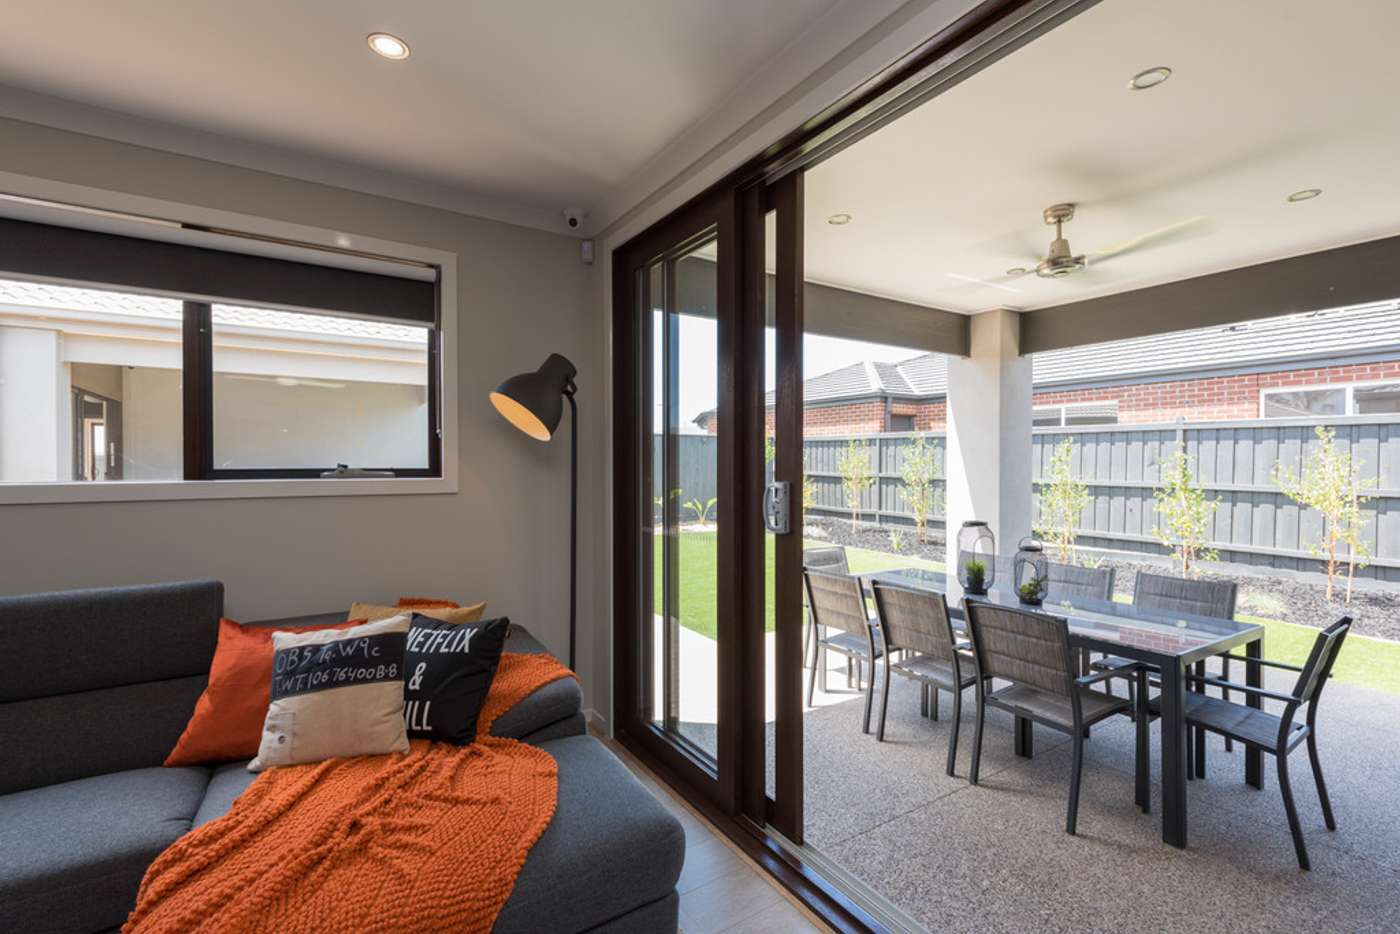 Fifth view of Homely house listing, 5 MT. COTTRELL, Truganina VIC 3029